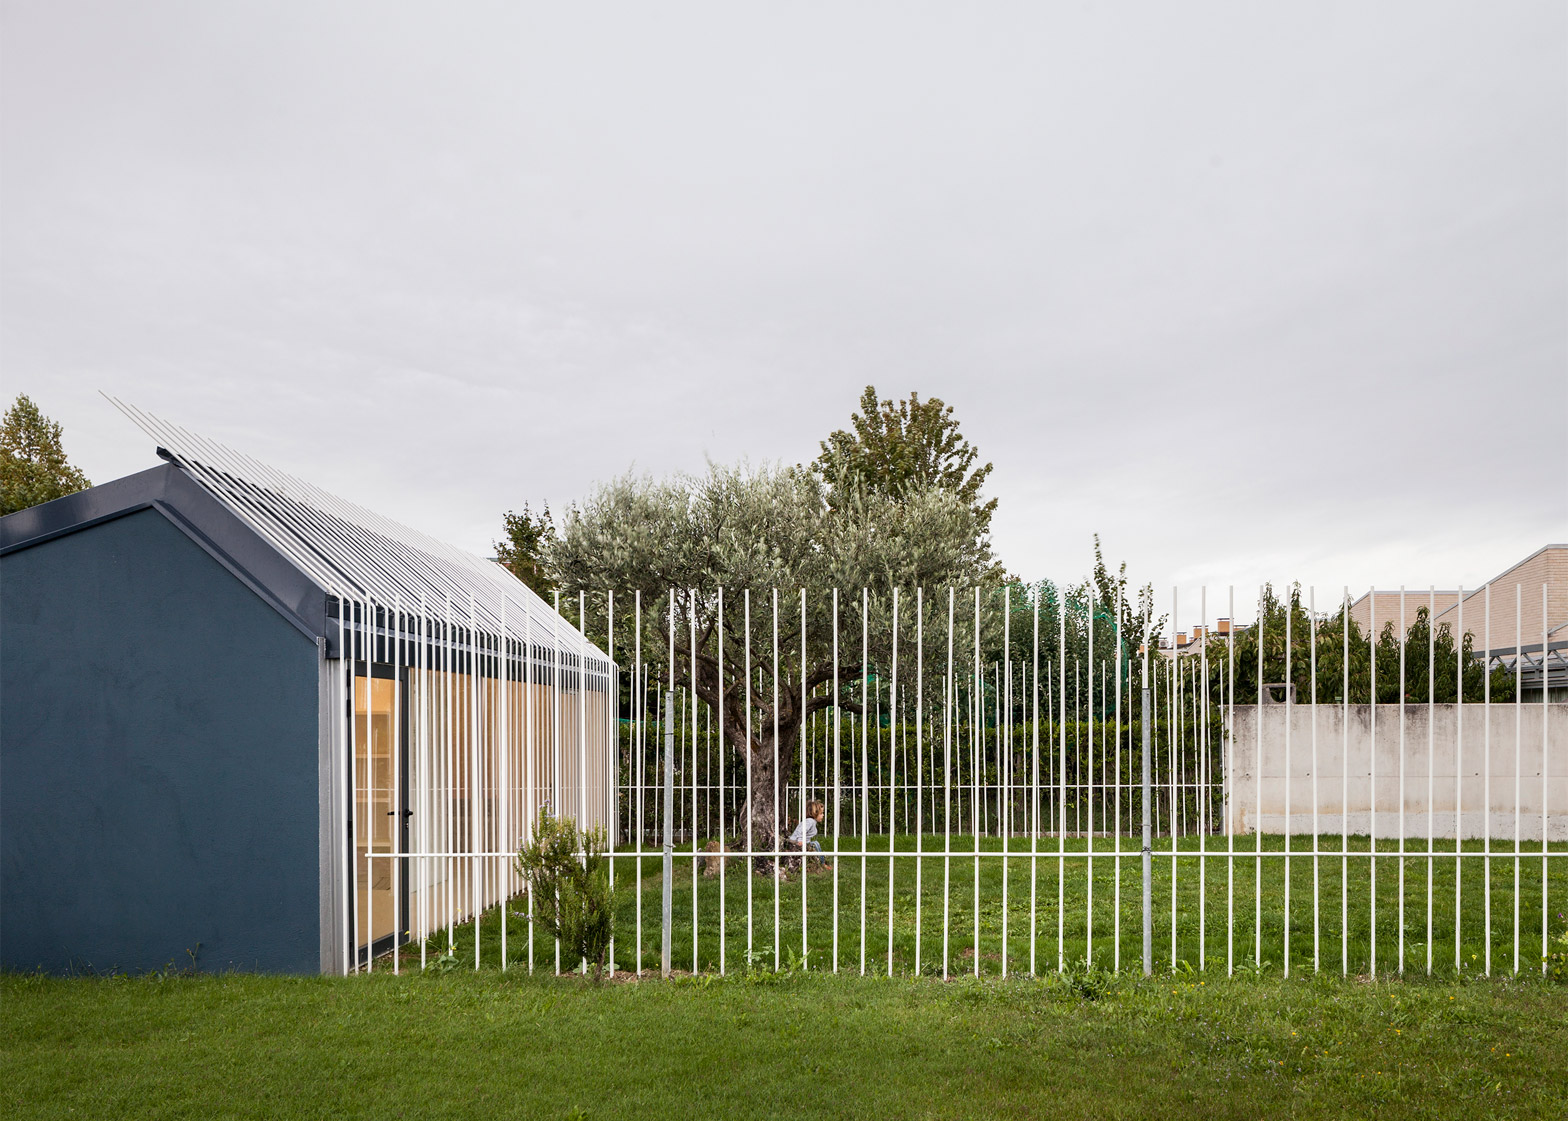 House for a man and a tree by Taller Basico